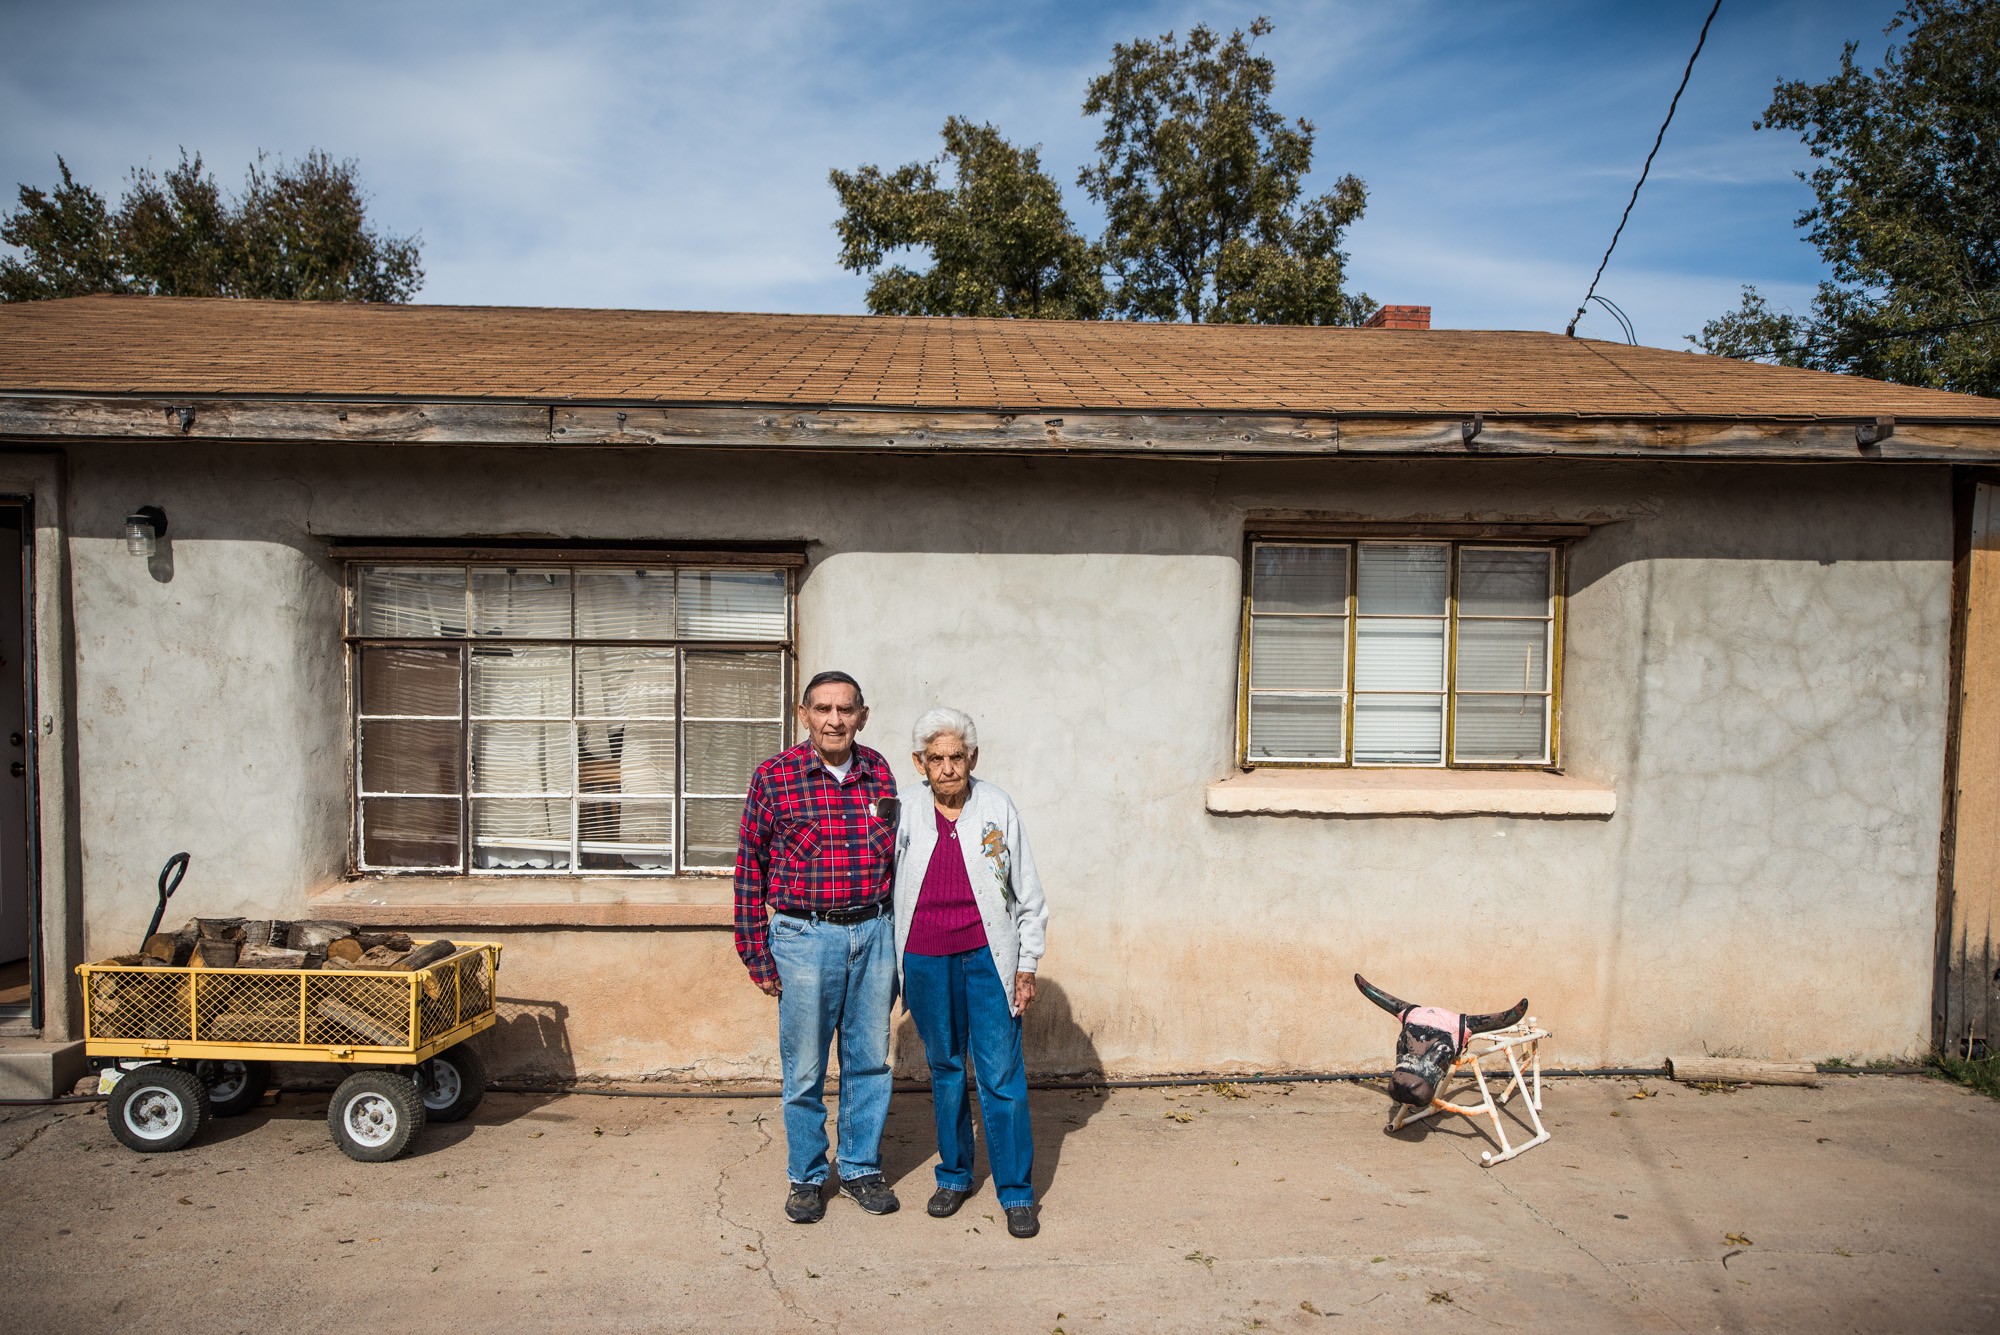 Fructoso Marujo, a distant cousin,and his wife outside the adobe home in Tularosa that he built back in the 1950's. Currently their children and their grand children live with them in the upgraded and modern baked-clay residence.